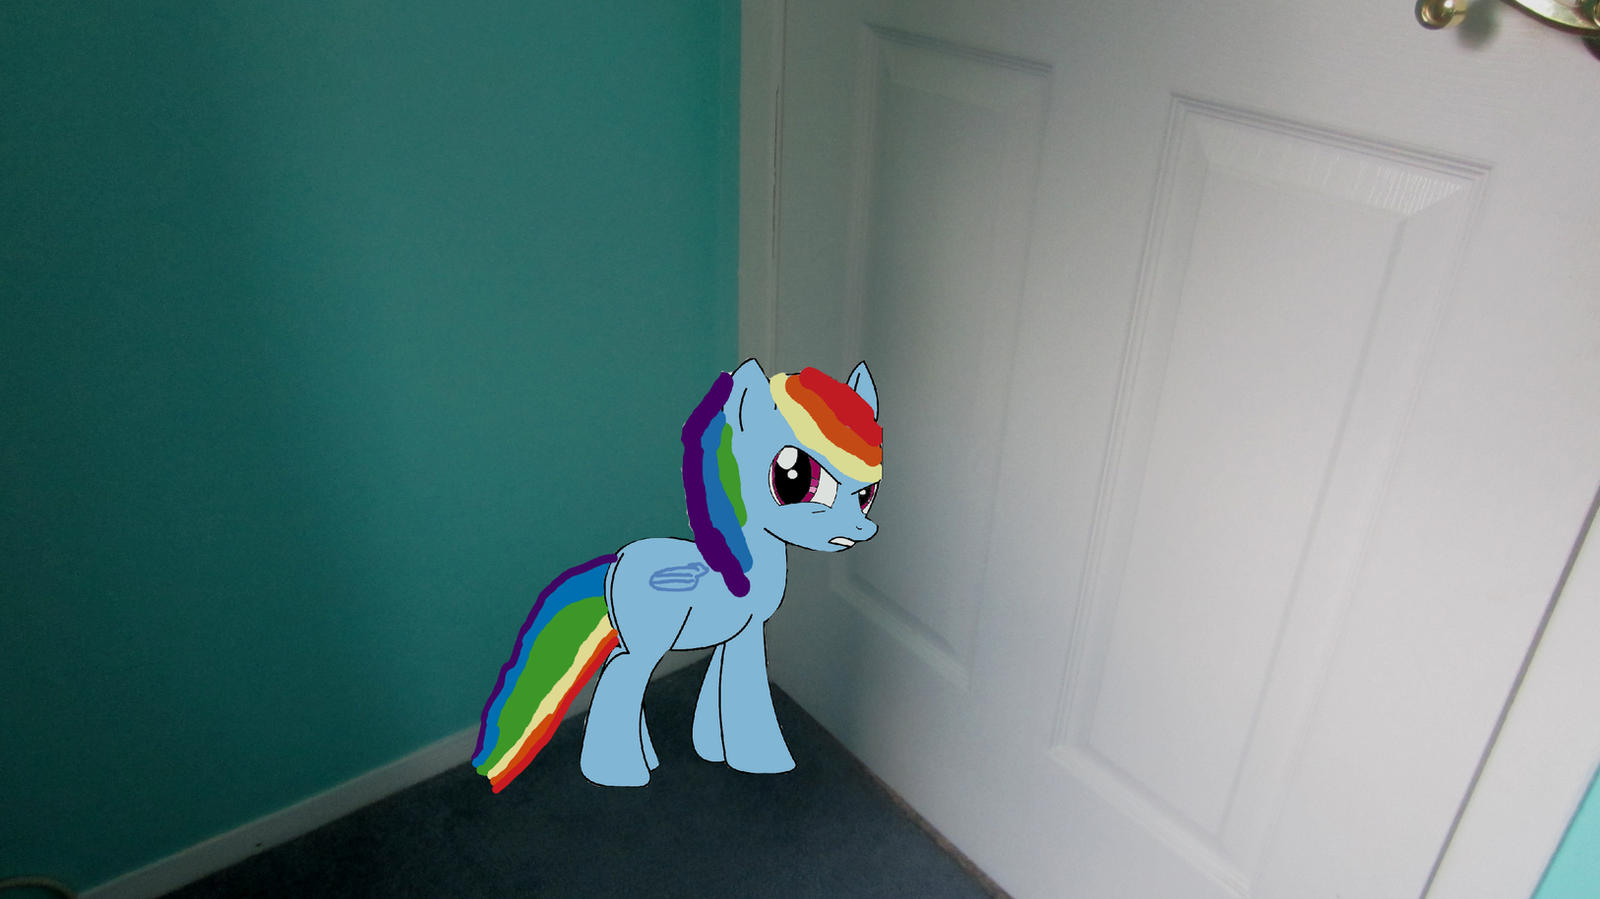 Rainbow Dash in Time out by MetalGriffen69. Rainbow Dash in Time out by MetalGriffen69 on DeviantArt